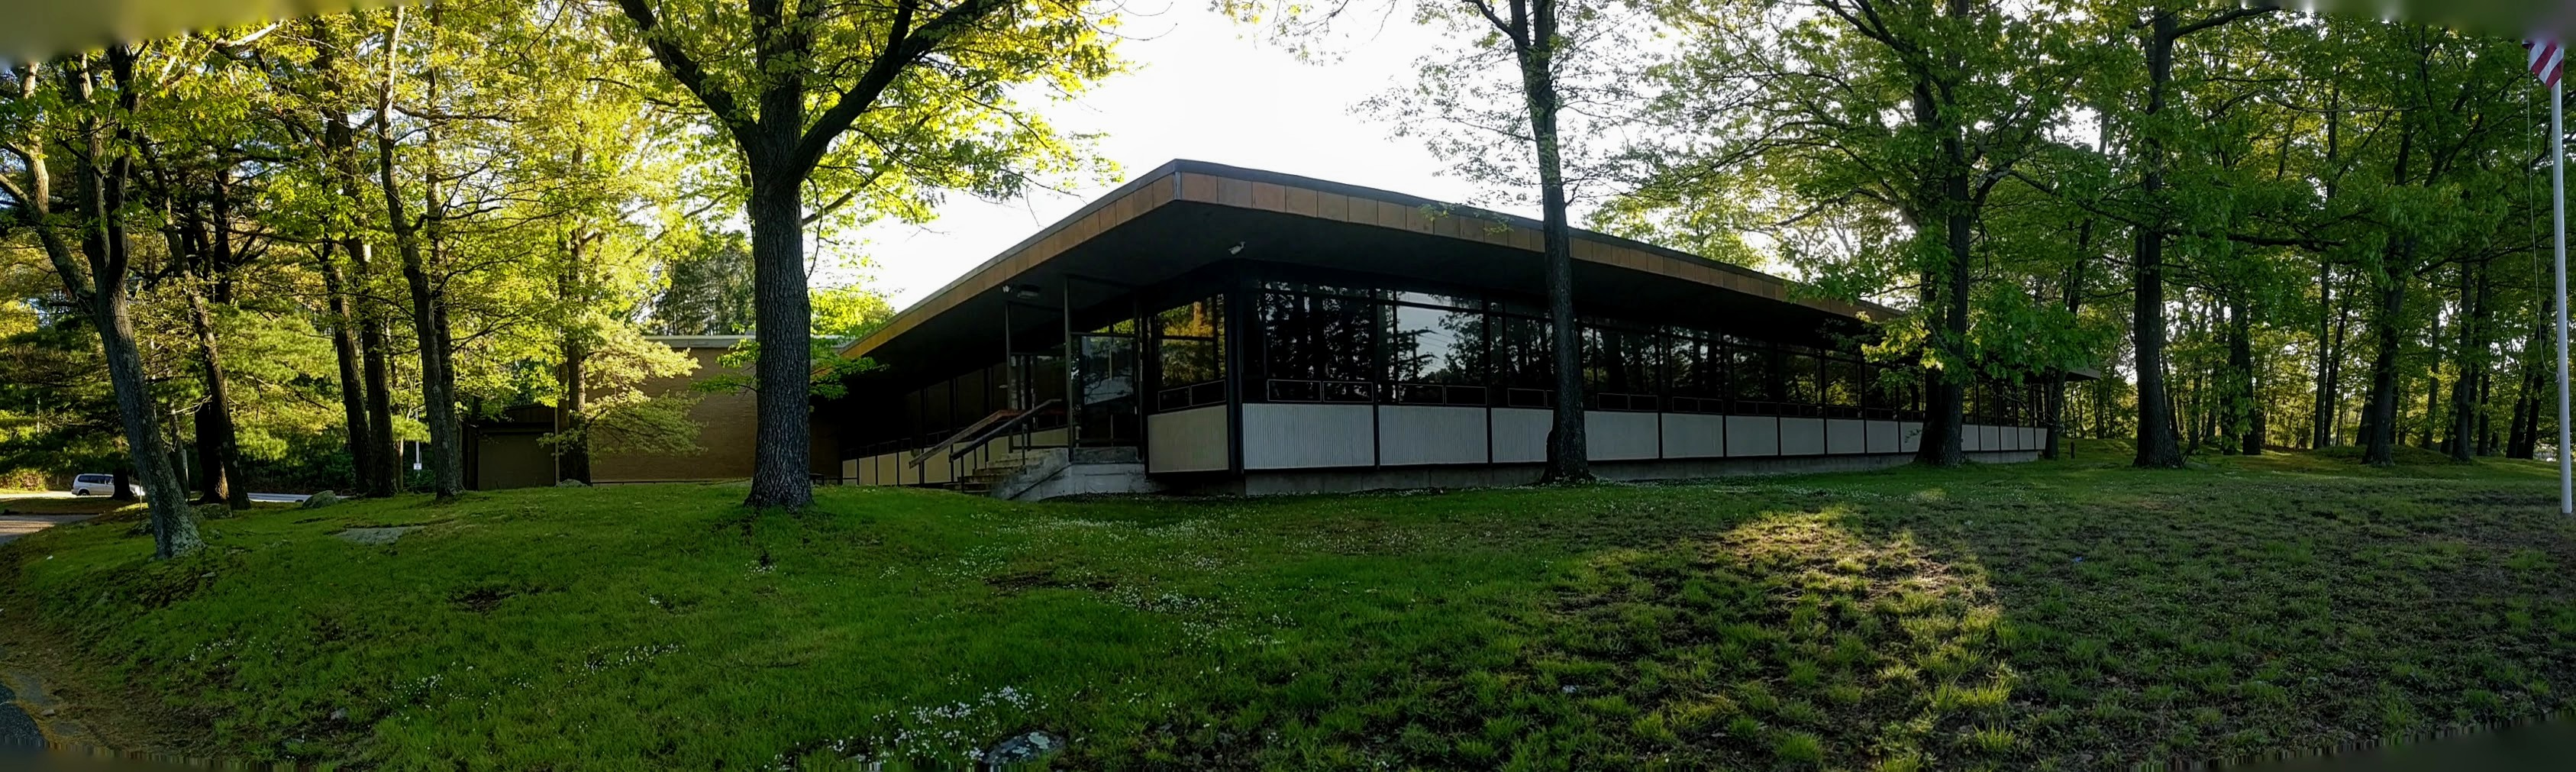 PANO_studied grace_public entrance_DONALD F MONELL_architect _Beverly Times Newspaper Plant and Offices_1969_ now Salem News_20190524_©catherine ryan (8).jpg